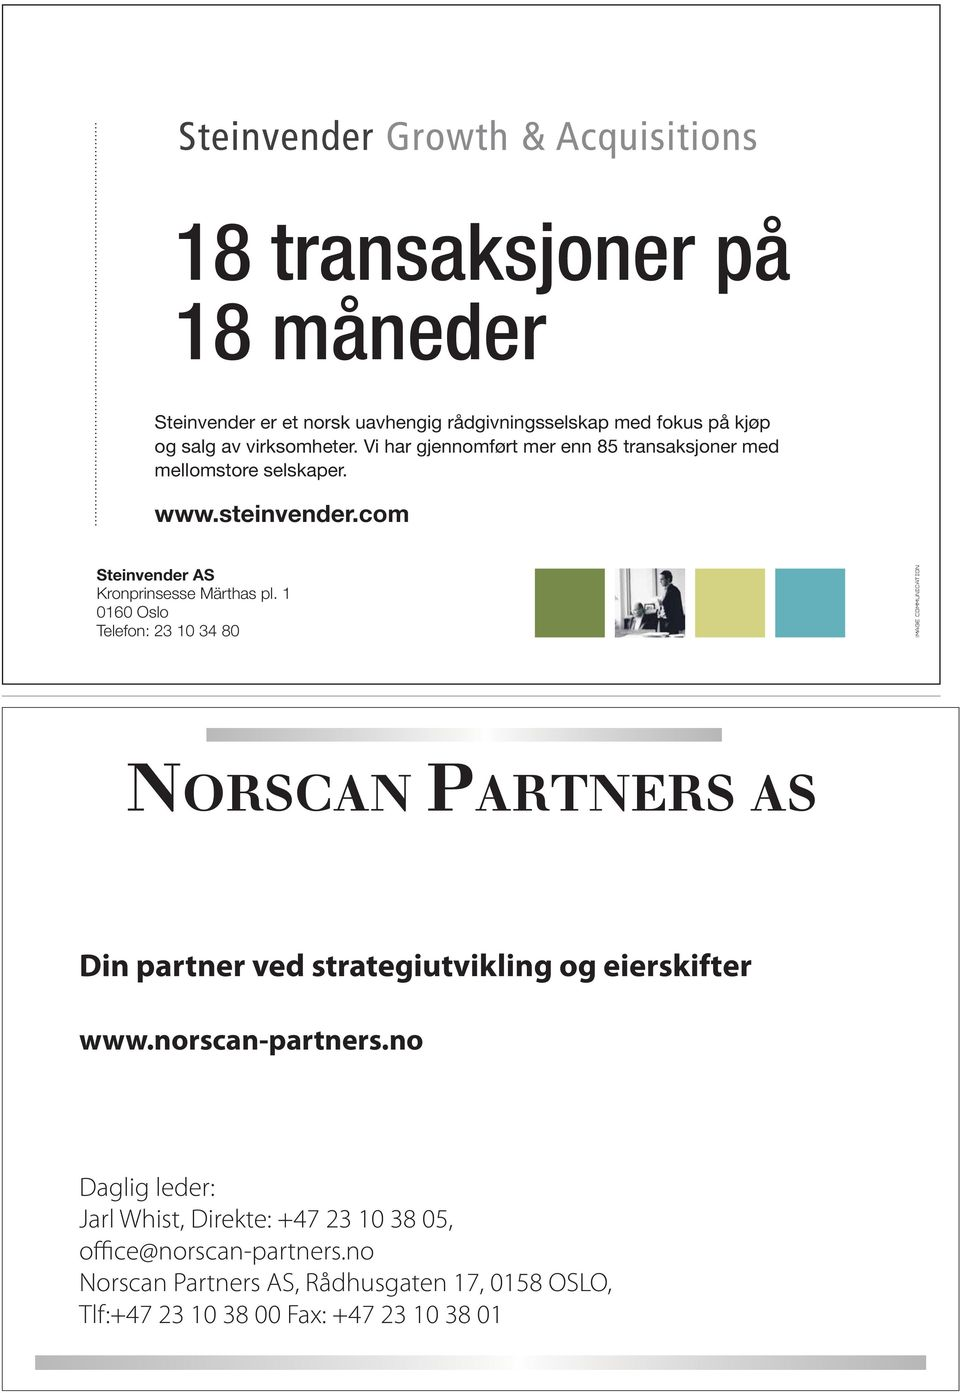 1 0160 Oslo Telefon: 23 10 34 80 Image Communication Din partner ved strategiutvikling og eierskifter www.norscan-partners.